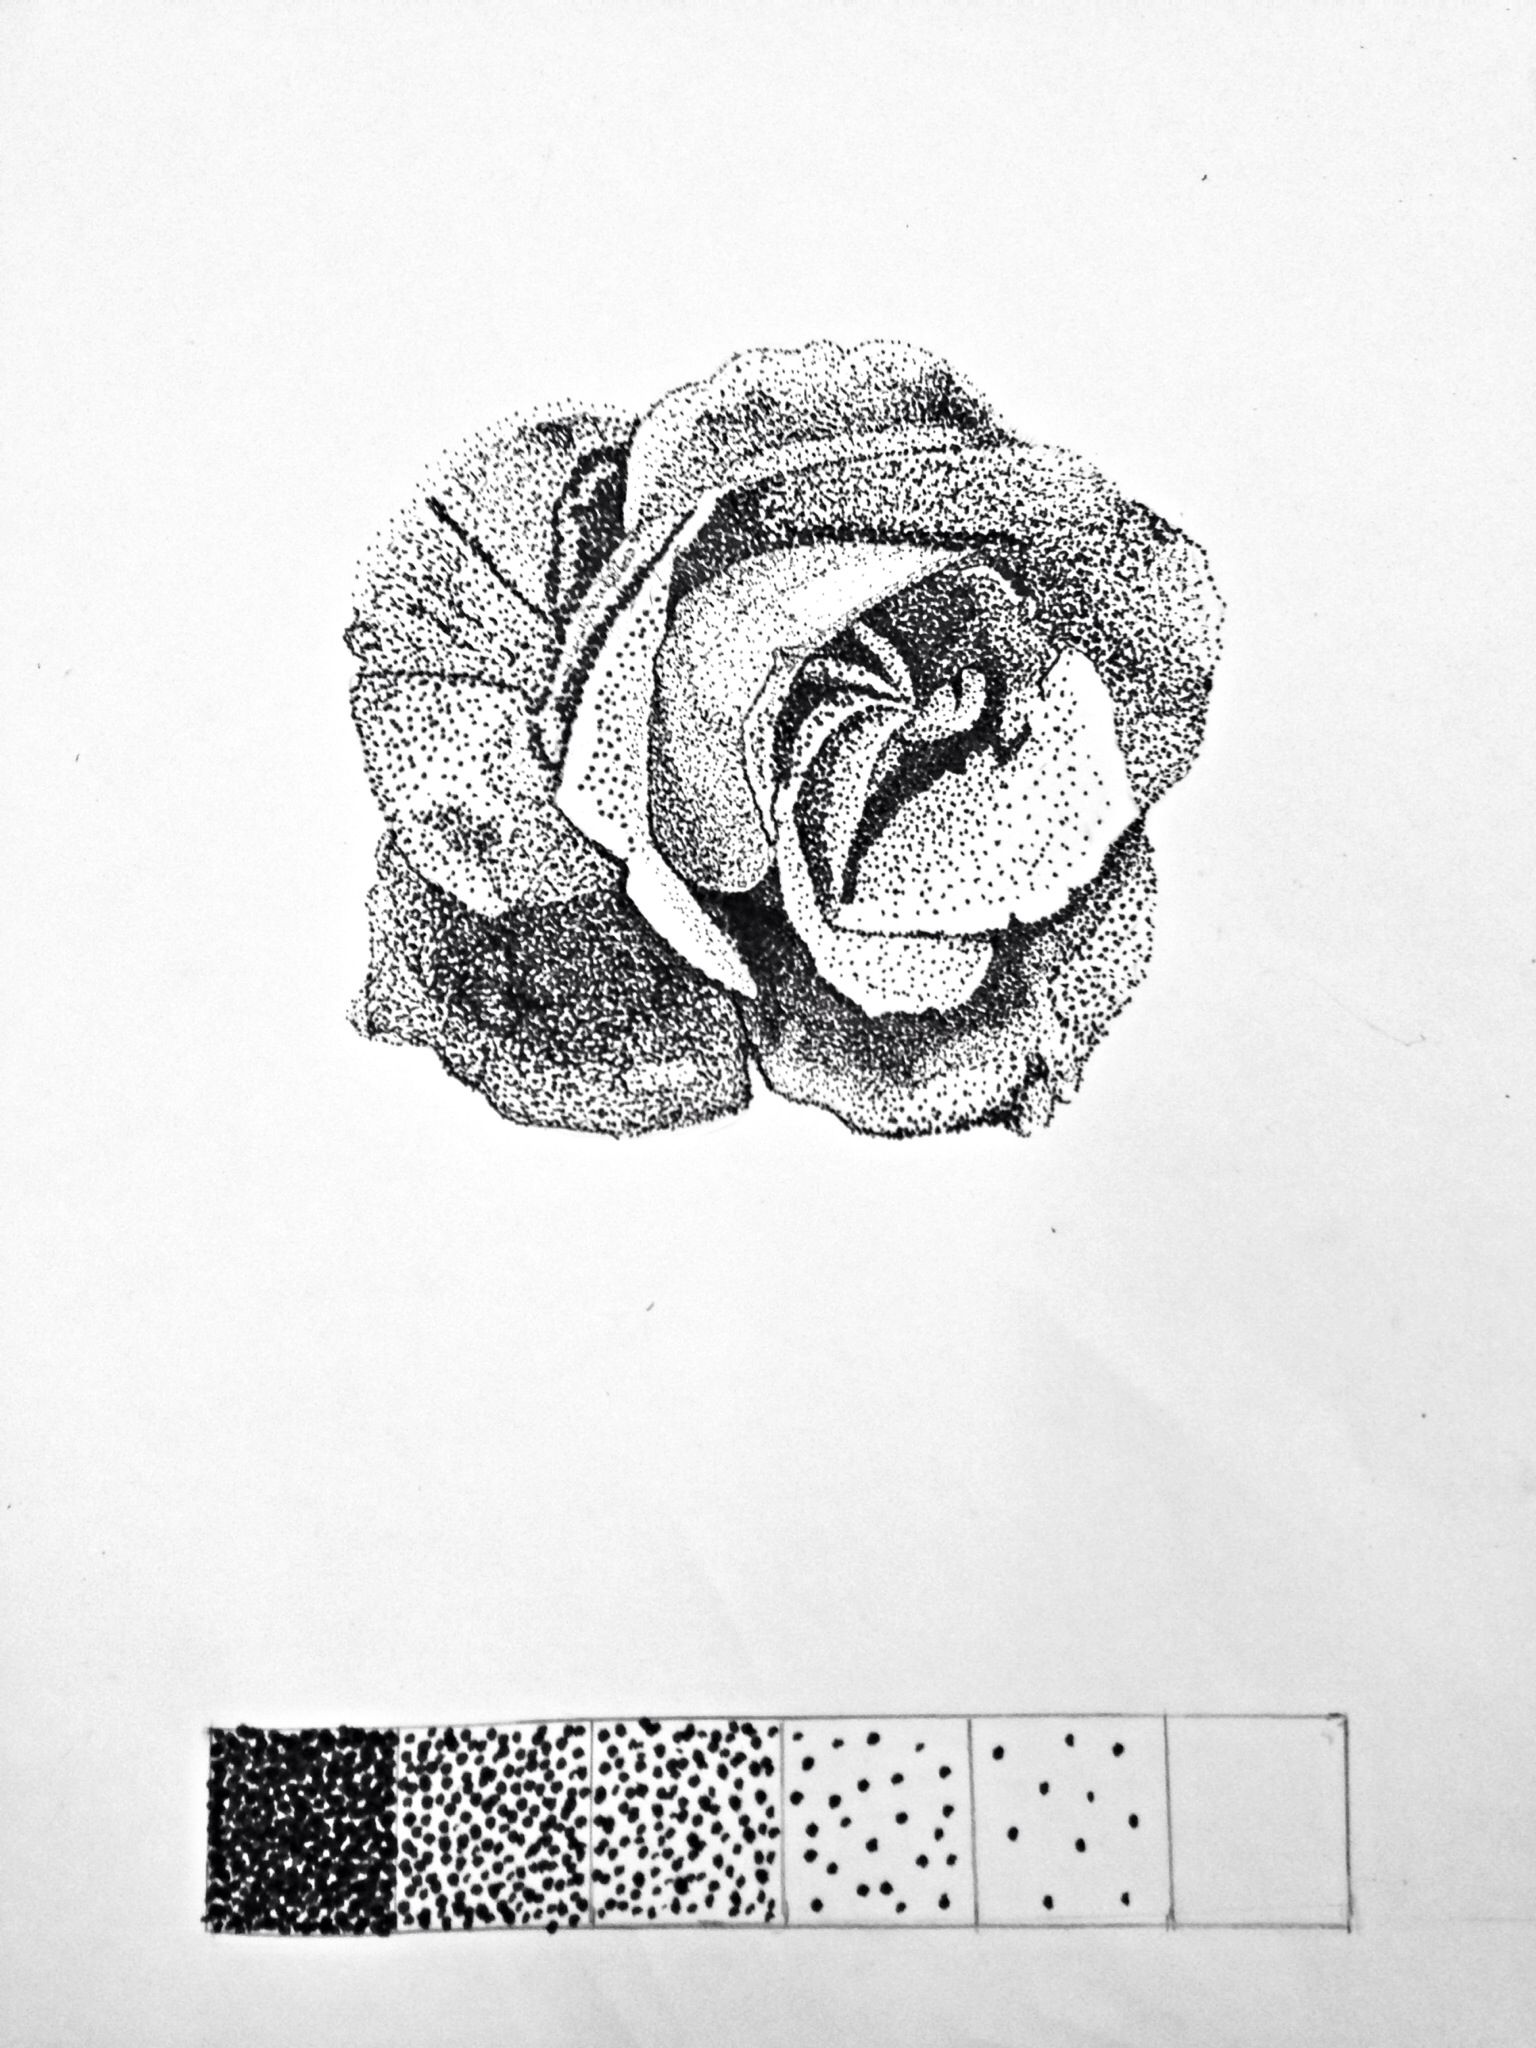 Rose Dot Pointillism Art Project Using A Calligraphy Pen 6